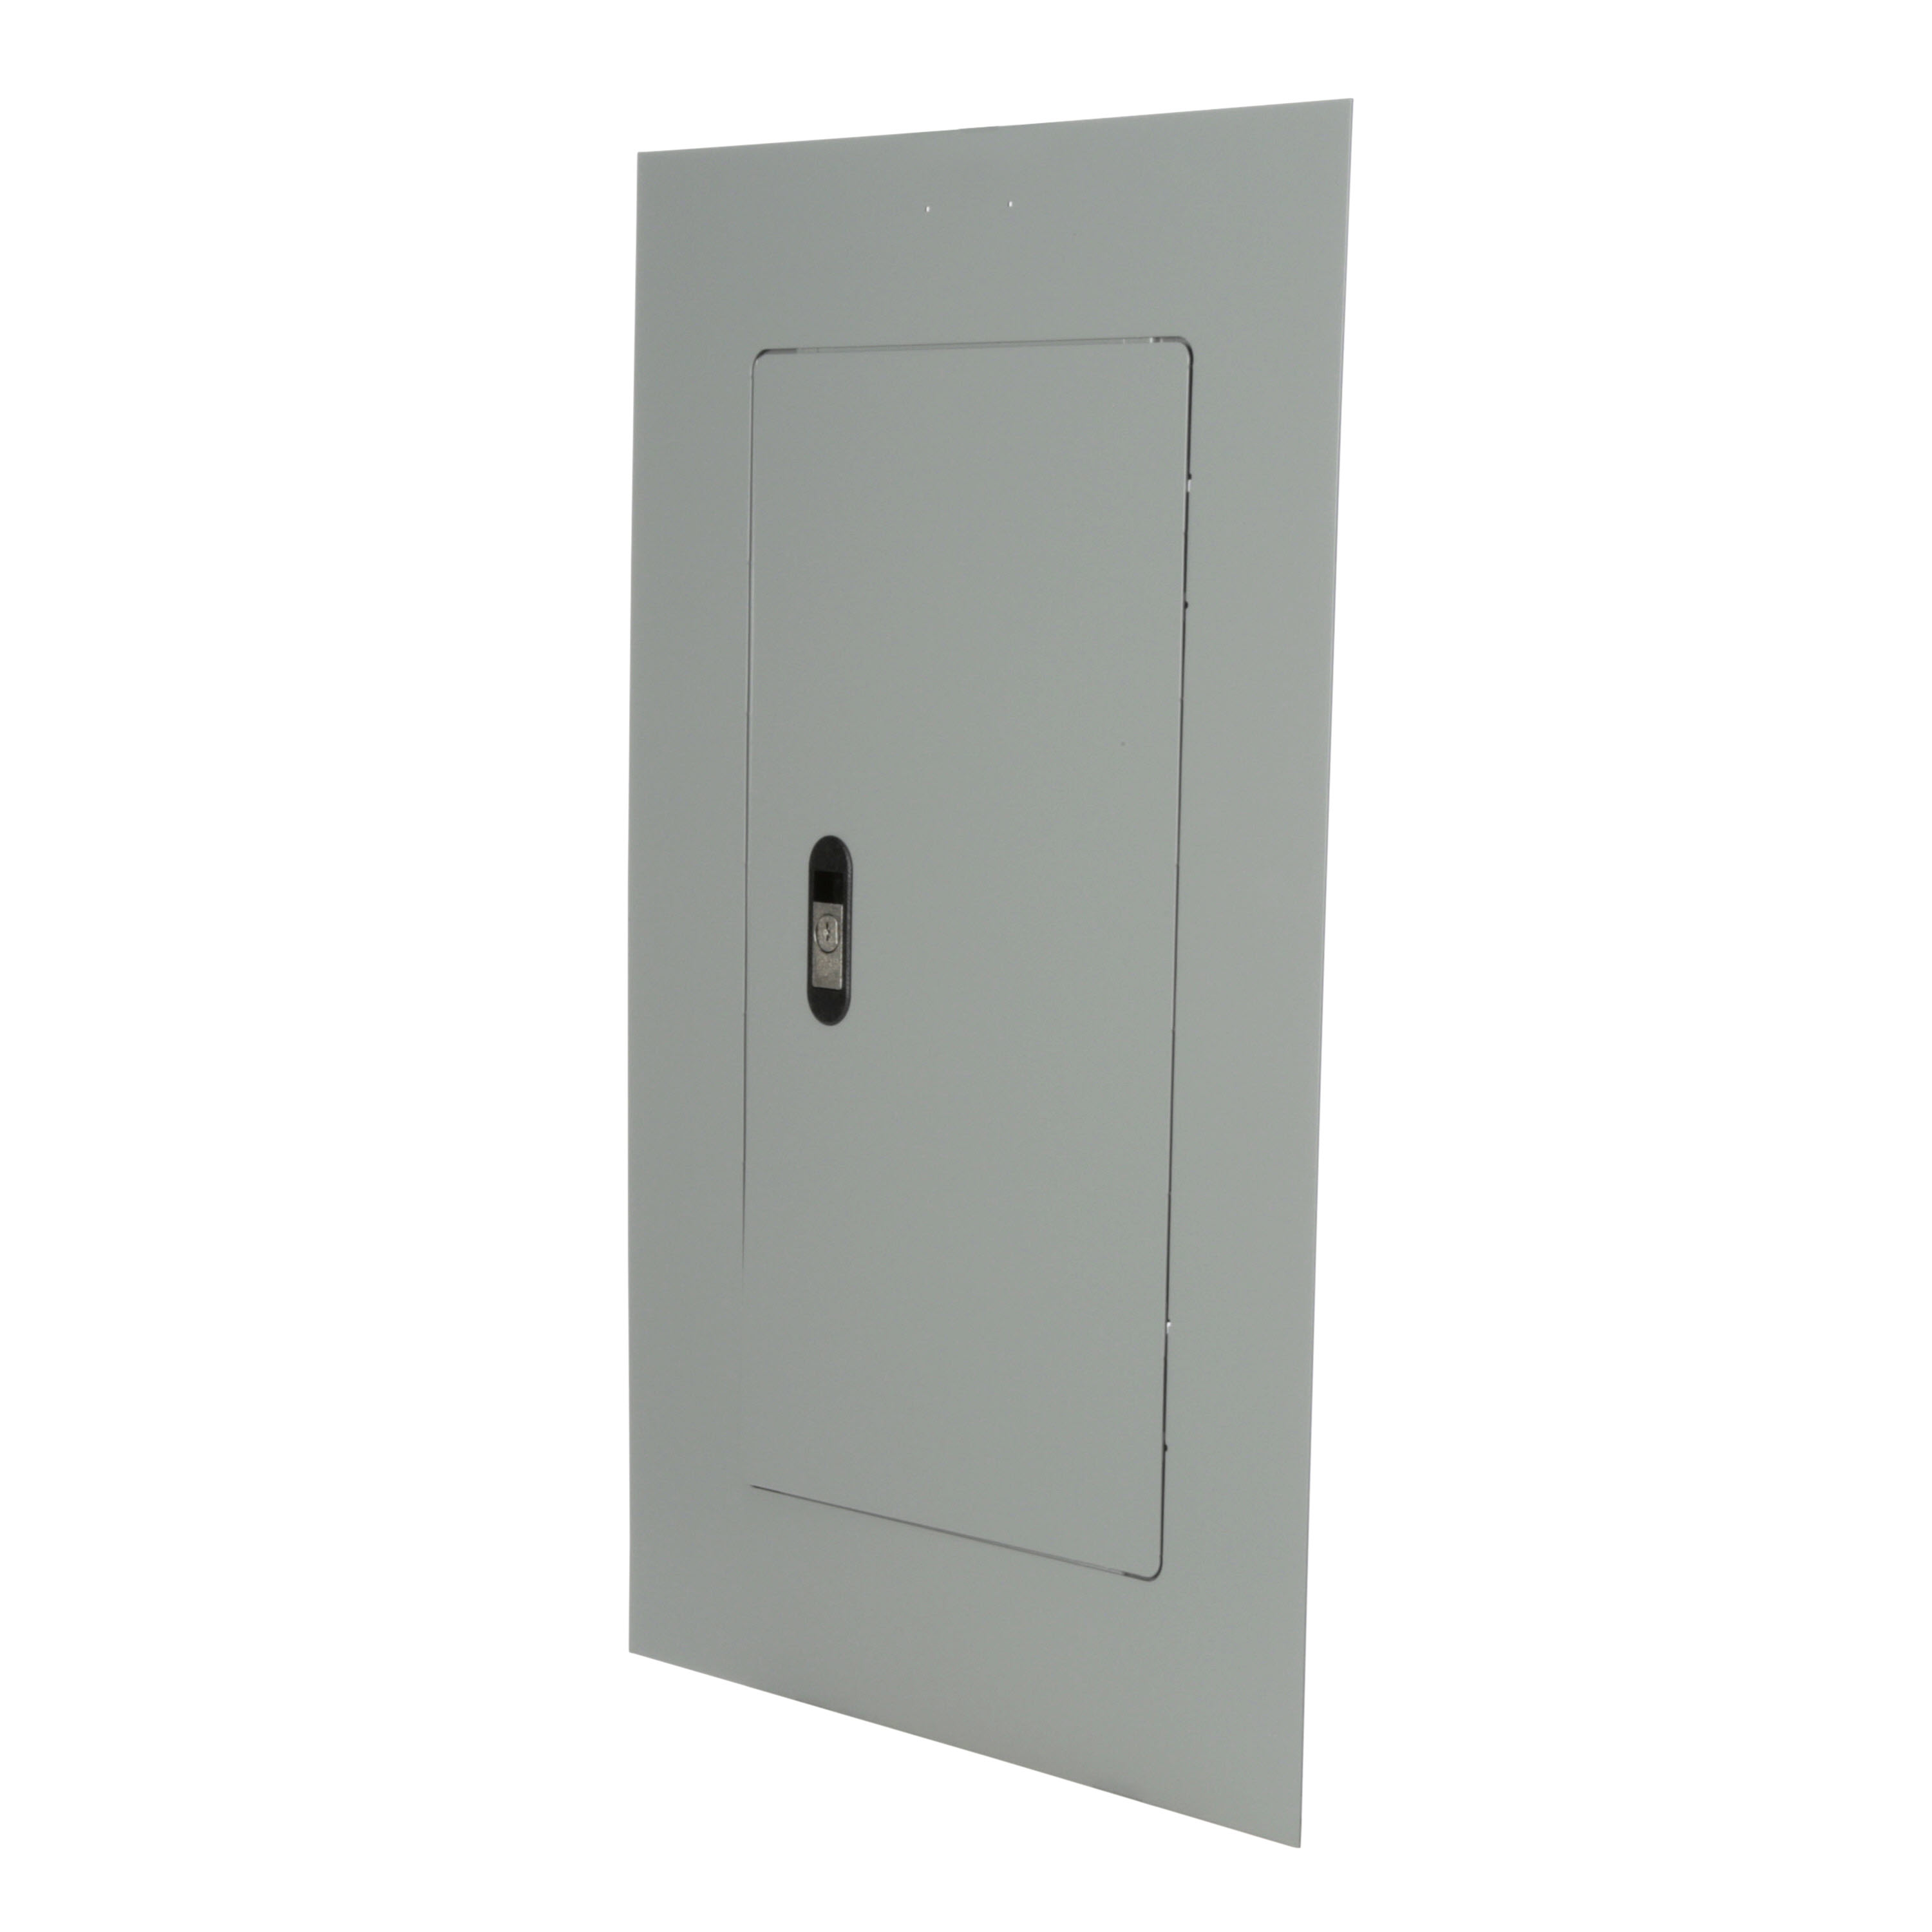 Siemens,F32B,Siemens F32B Type 1 Standard Trim, 32 in L x 20 in W, For Use With 32 in Height P1/P2 Panelboards, Steel, Flush Mount